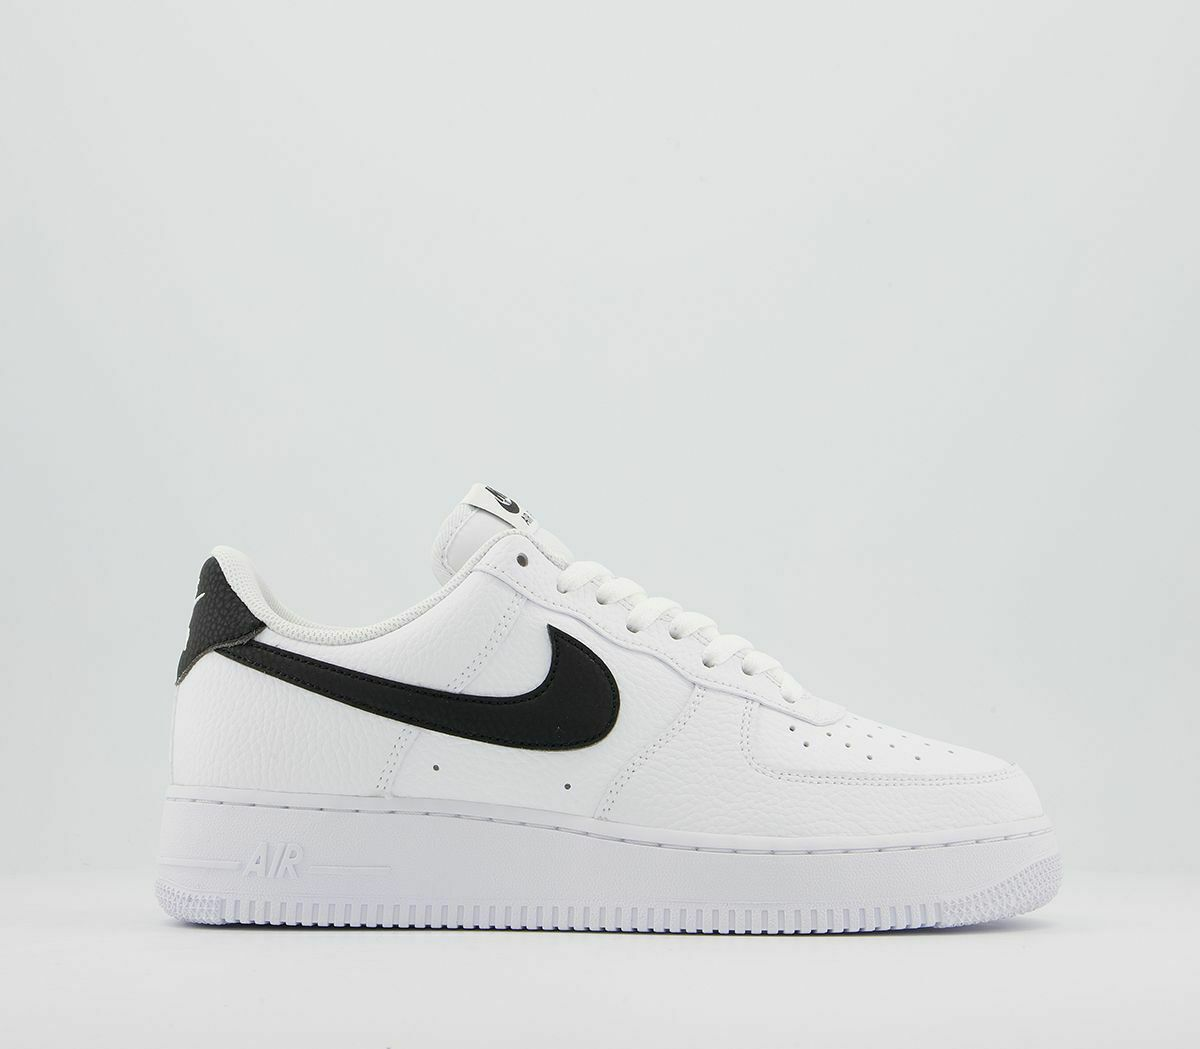 Nike Air Force 1 07 White Black Men's Trainers Limited Stock